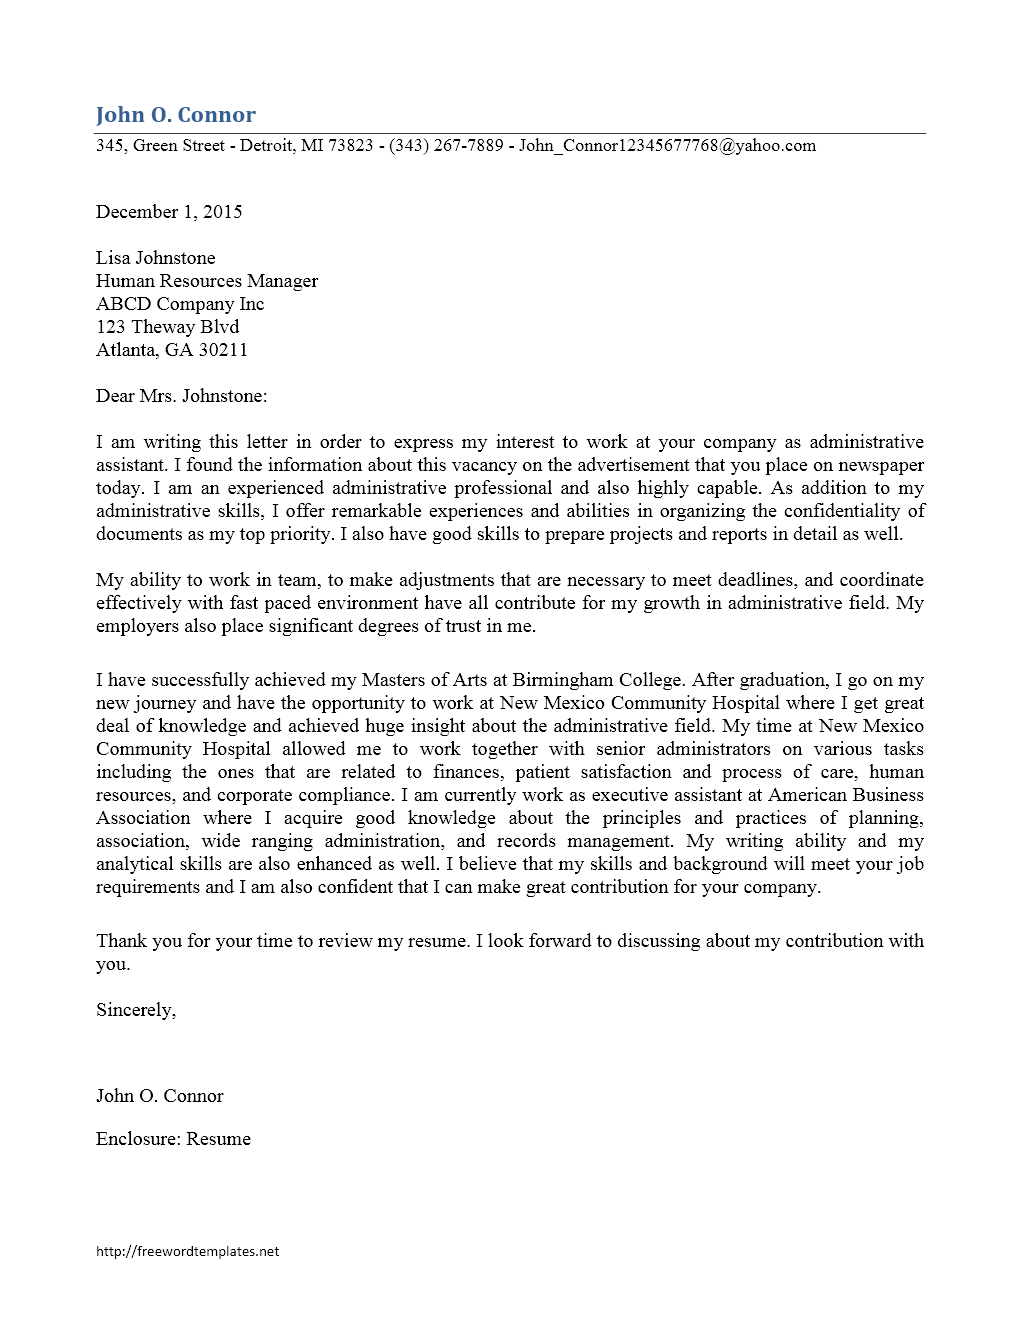 administrative assistant cover letter freewordtemplates net